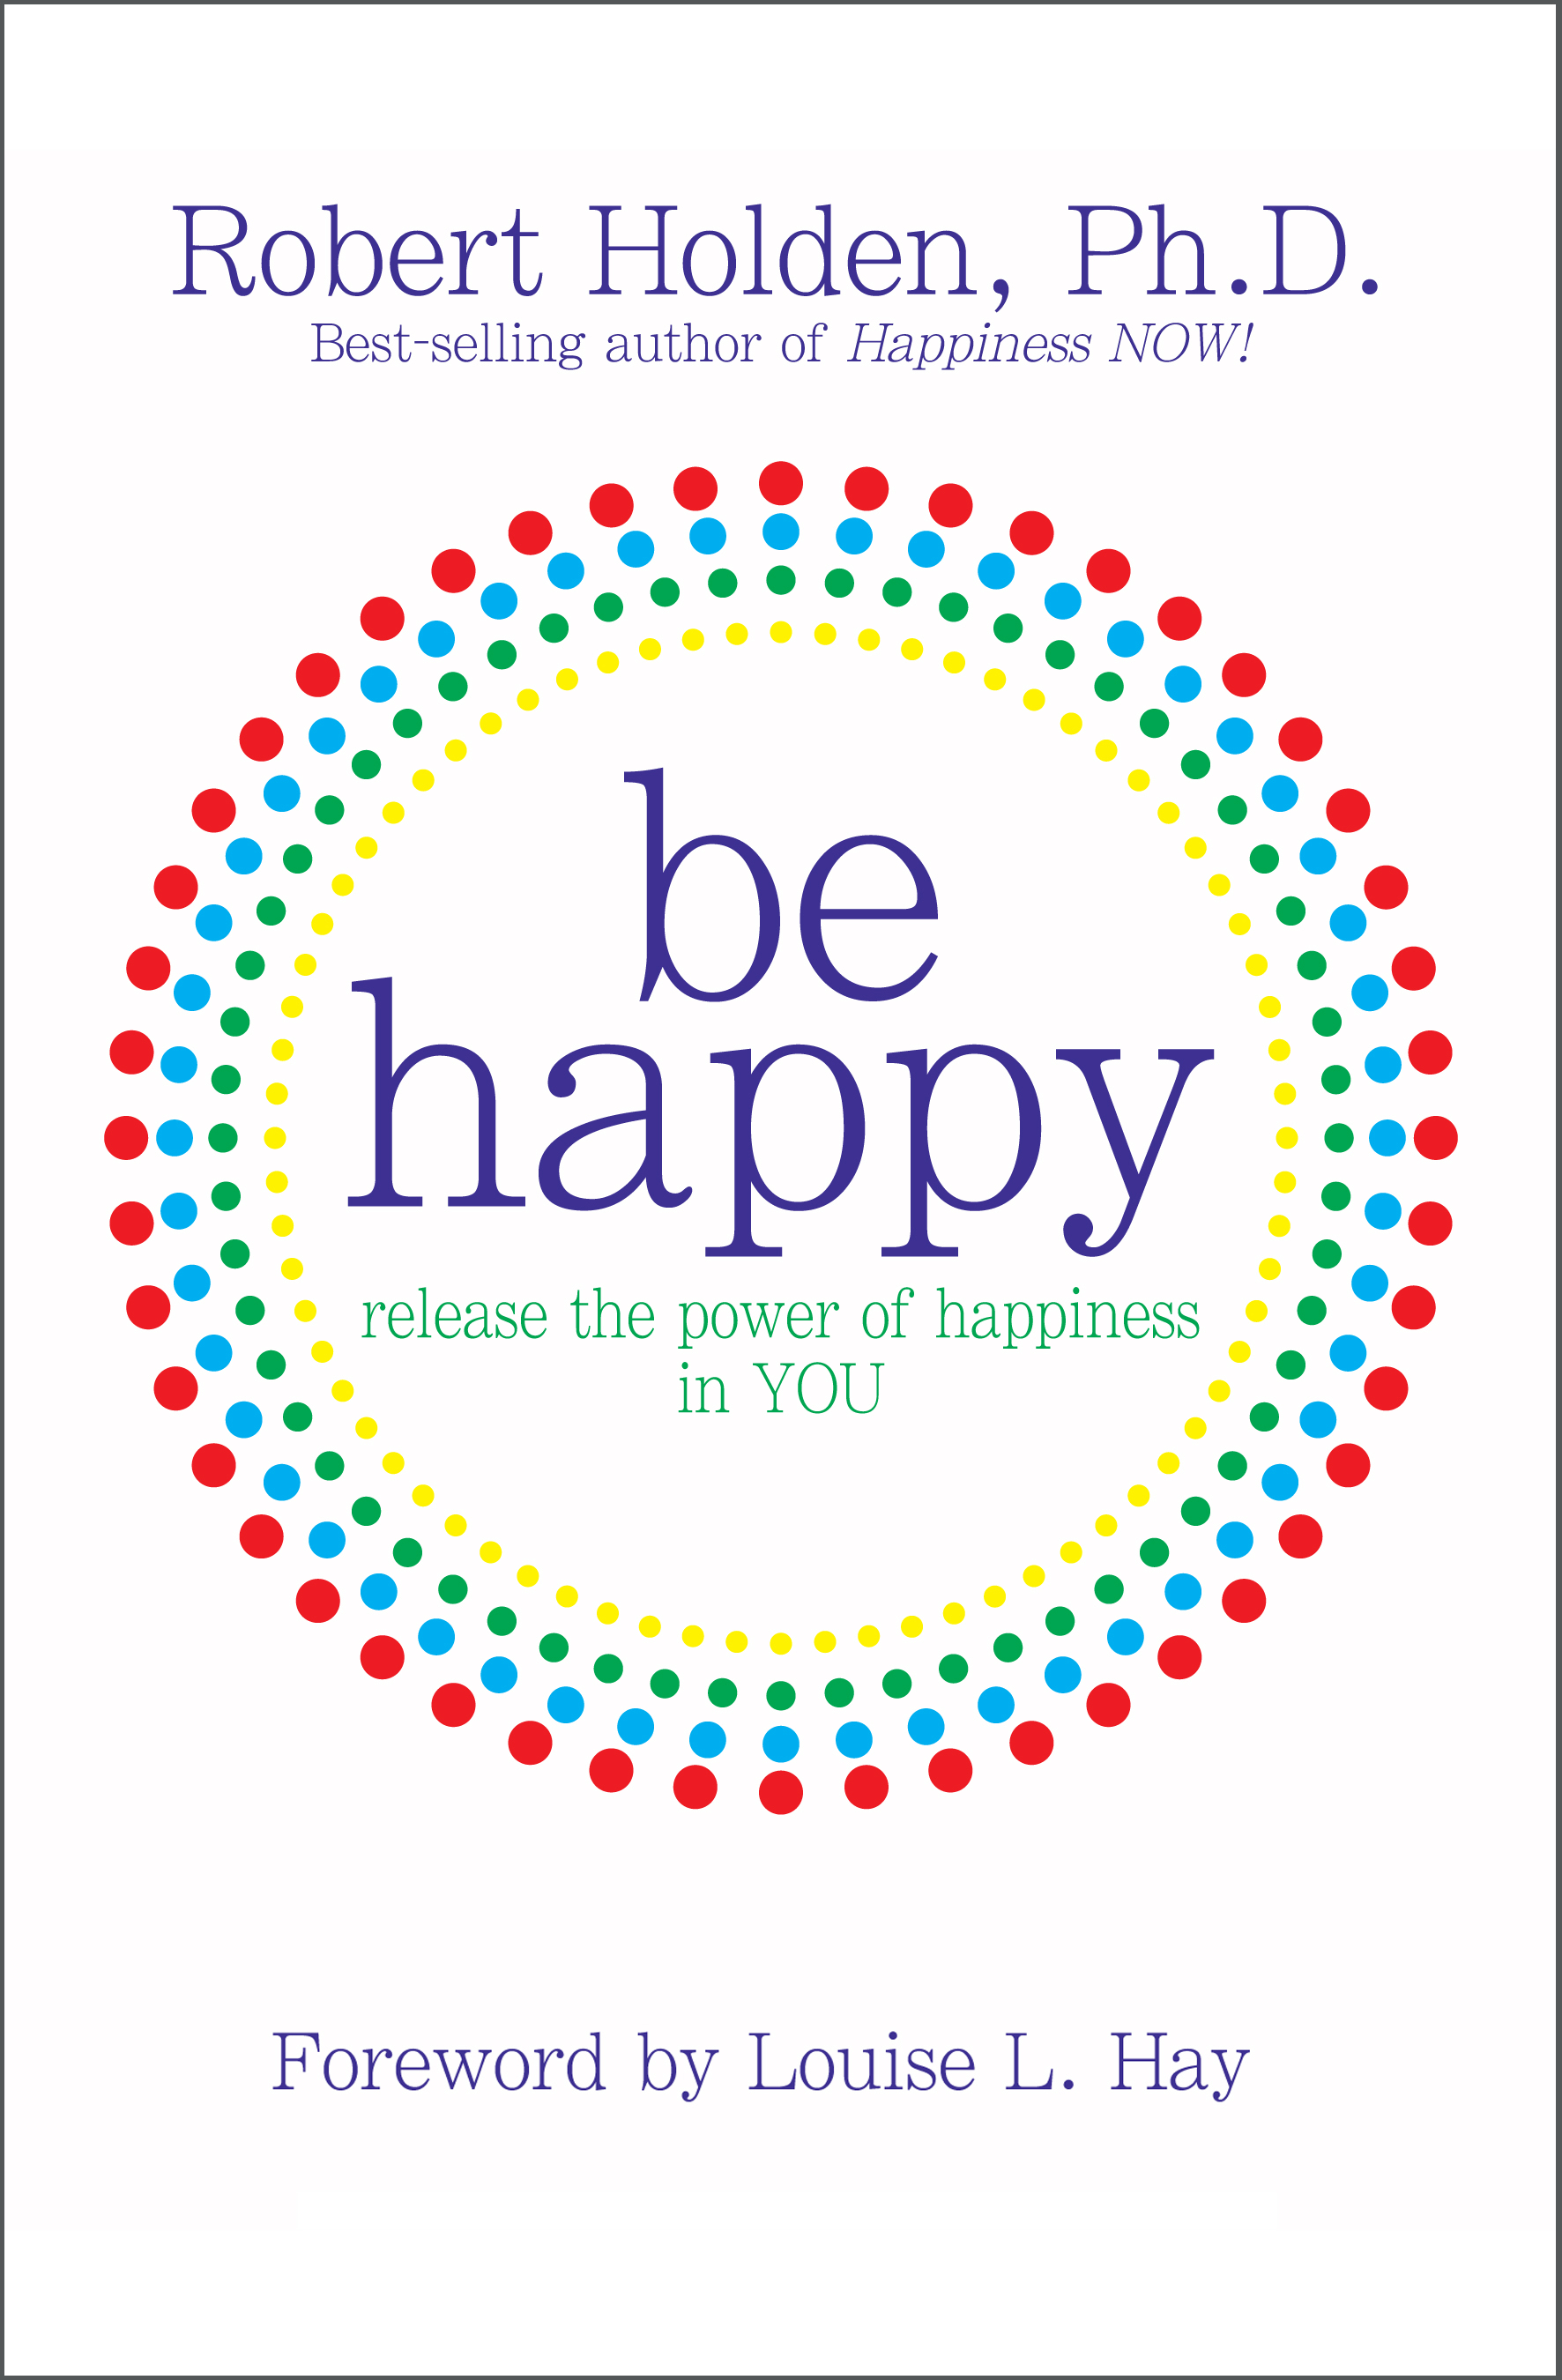 BE-HAPPY-BOOK-COVER.jpg